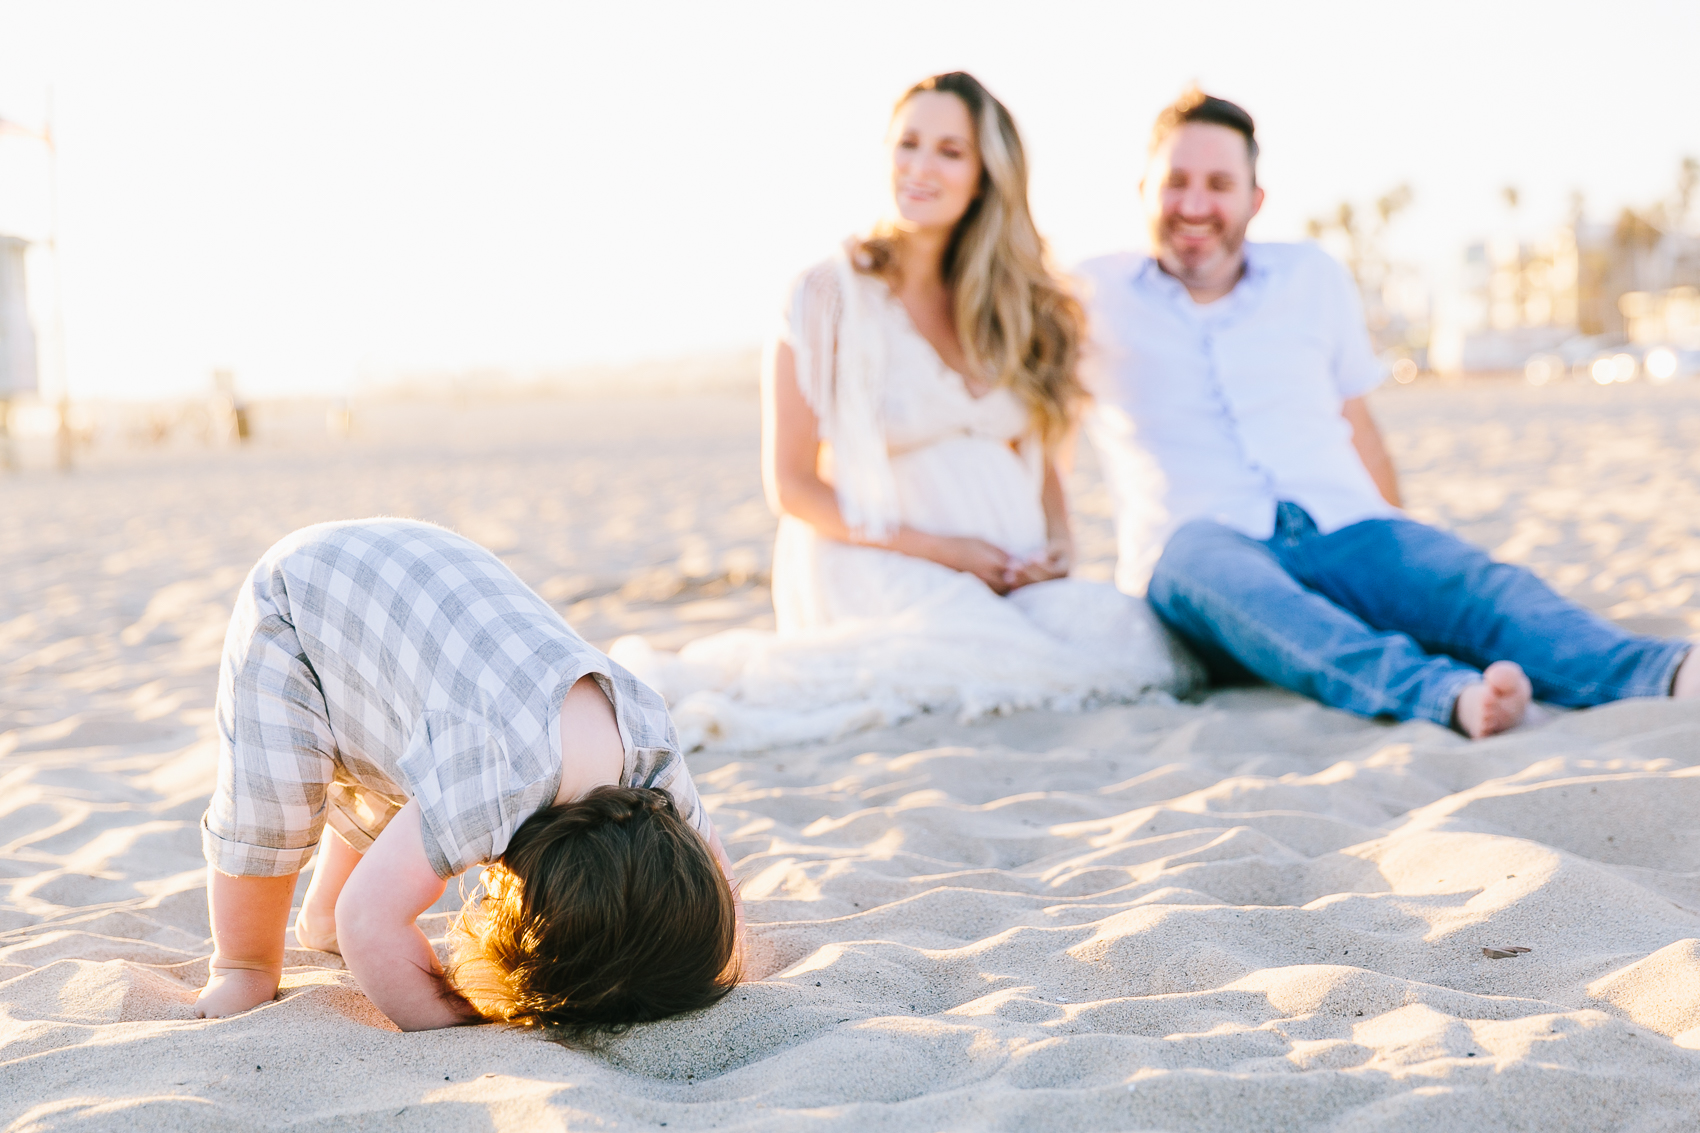 Los_Angeles_Family_Photographer_Maternity_Photos_Baby_Pregnancy_Venice_Beach_Golden_Hour-0706.jpg